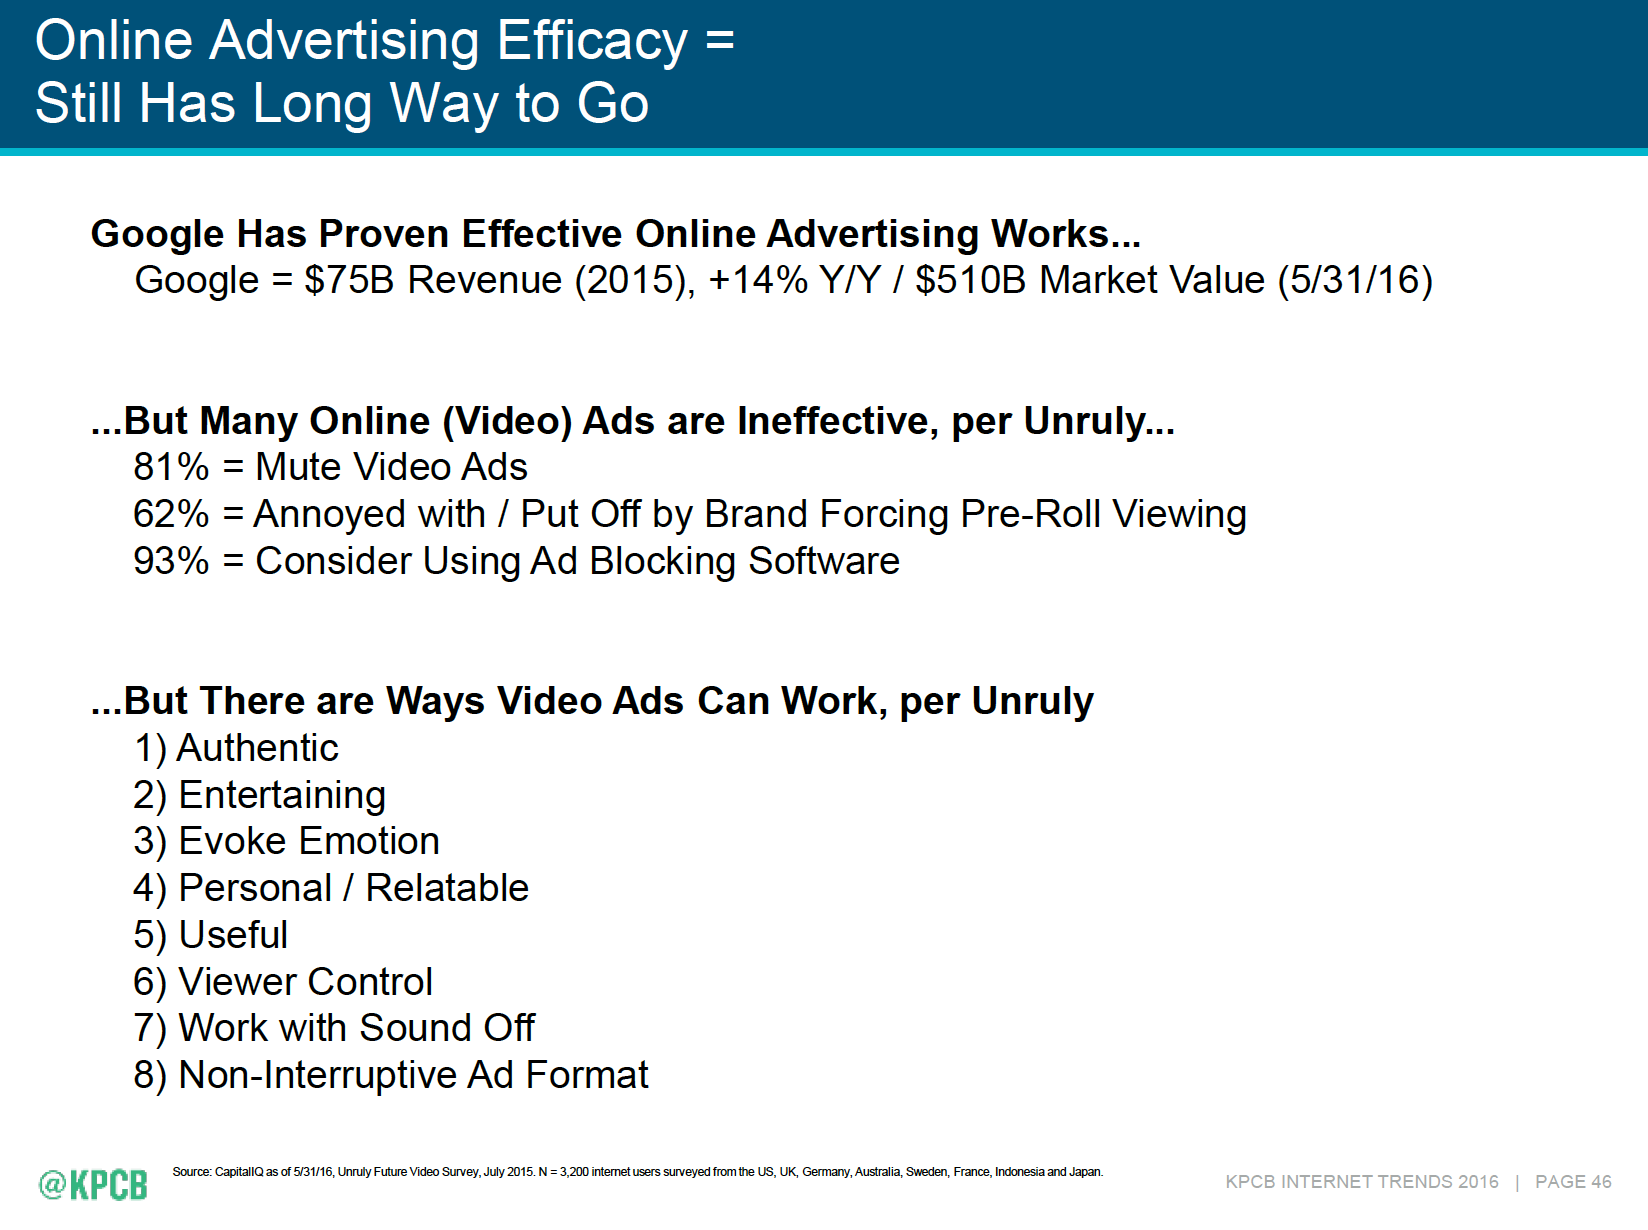 Authentic video ads win - Mary Meeker Internet Trends Report